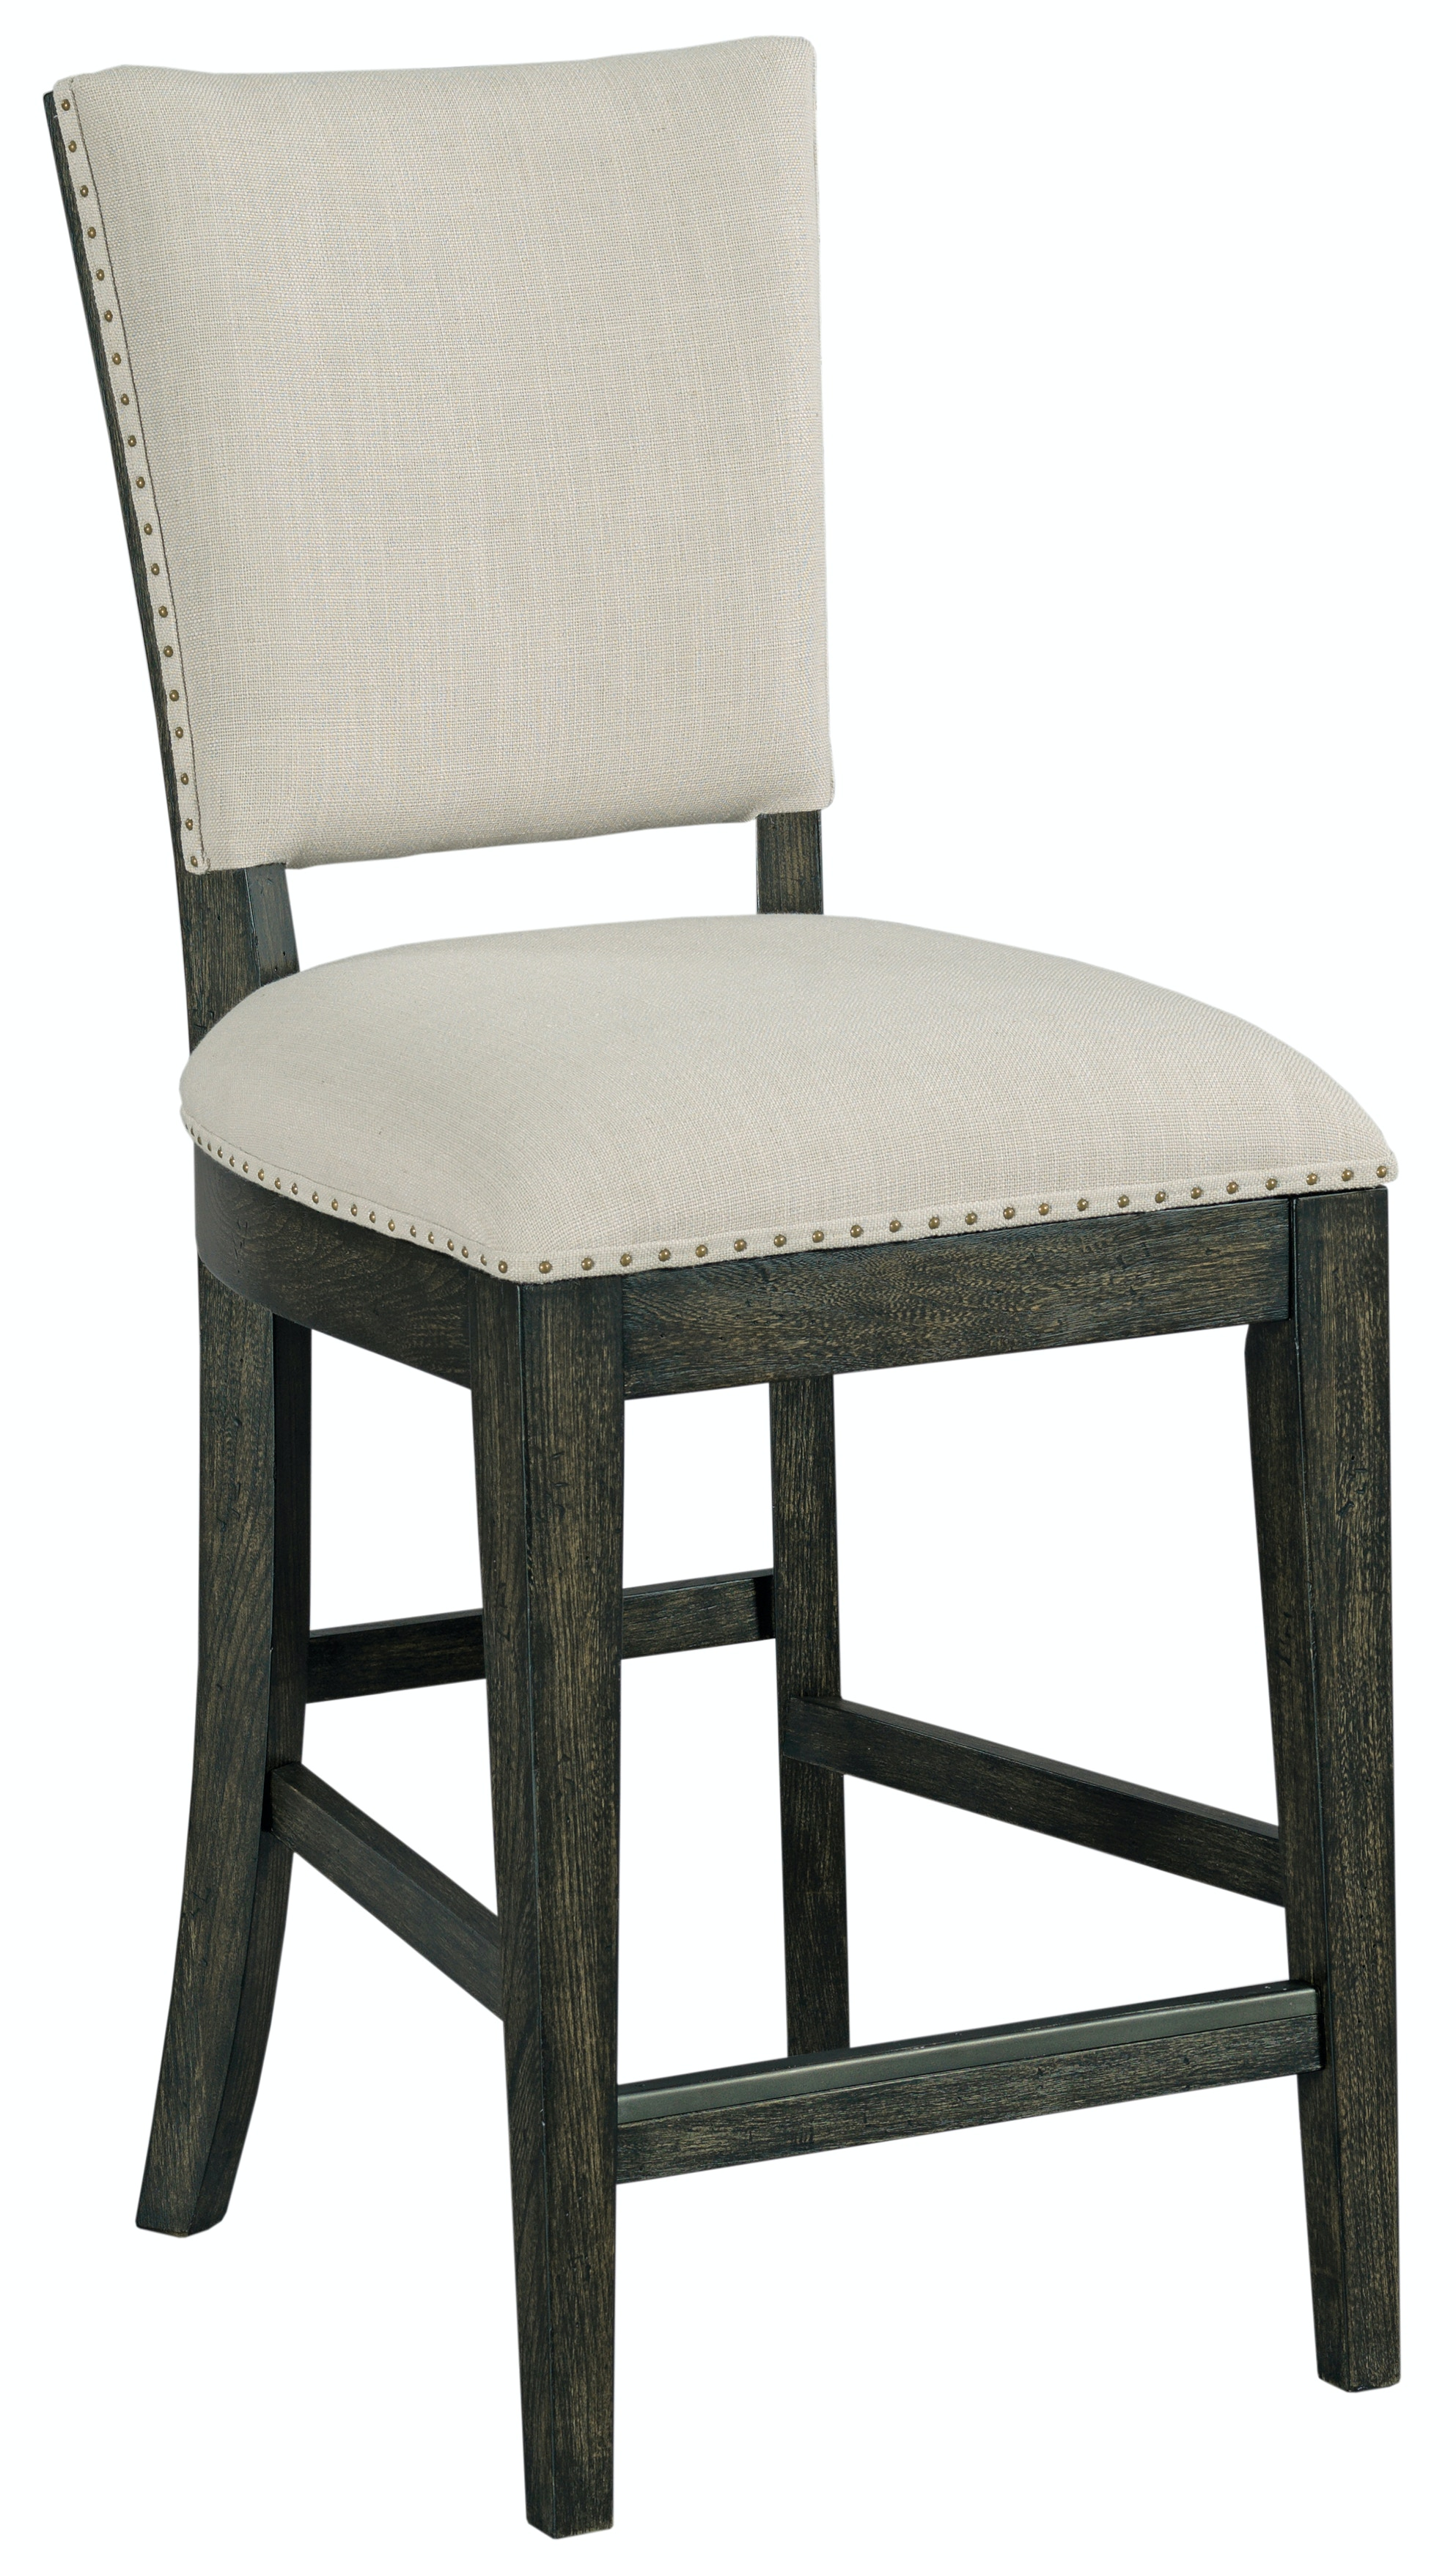 upholstered counter height chairs parker knoll dining room plank road kimler chair charcoal st 488386